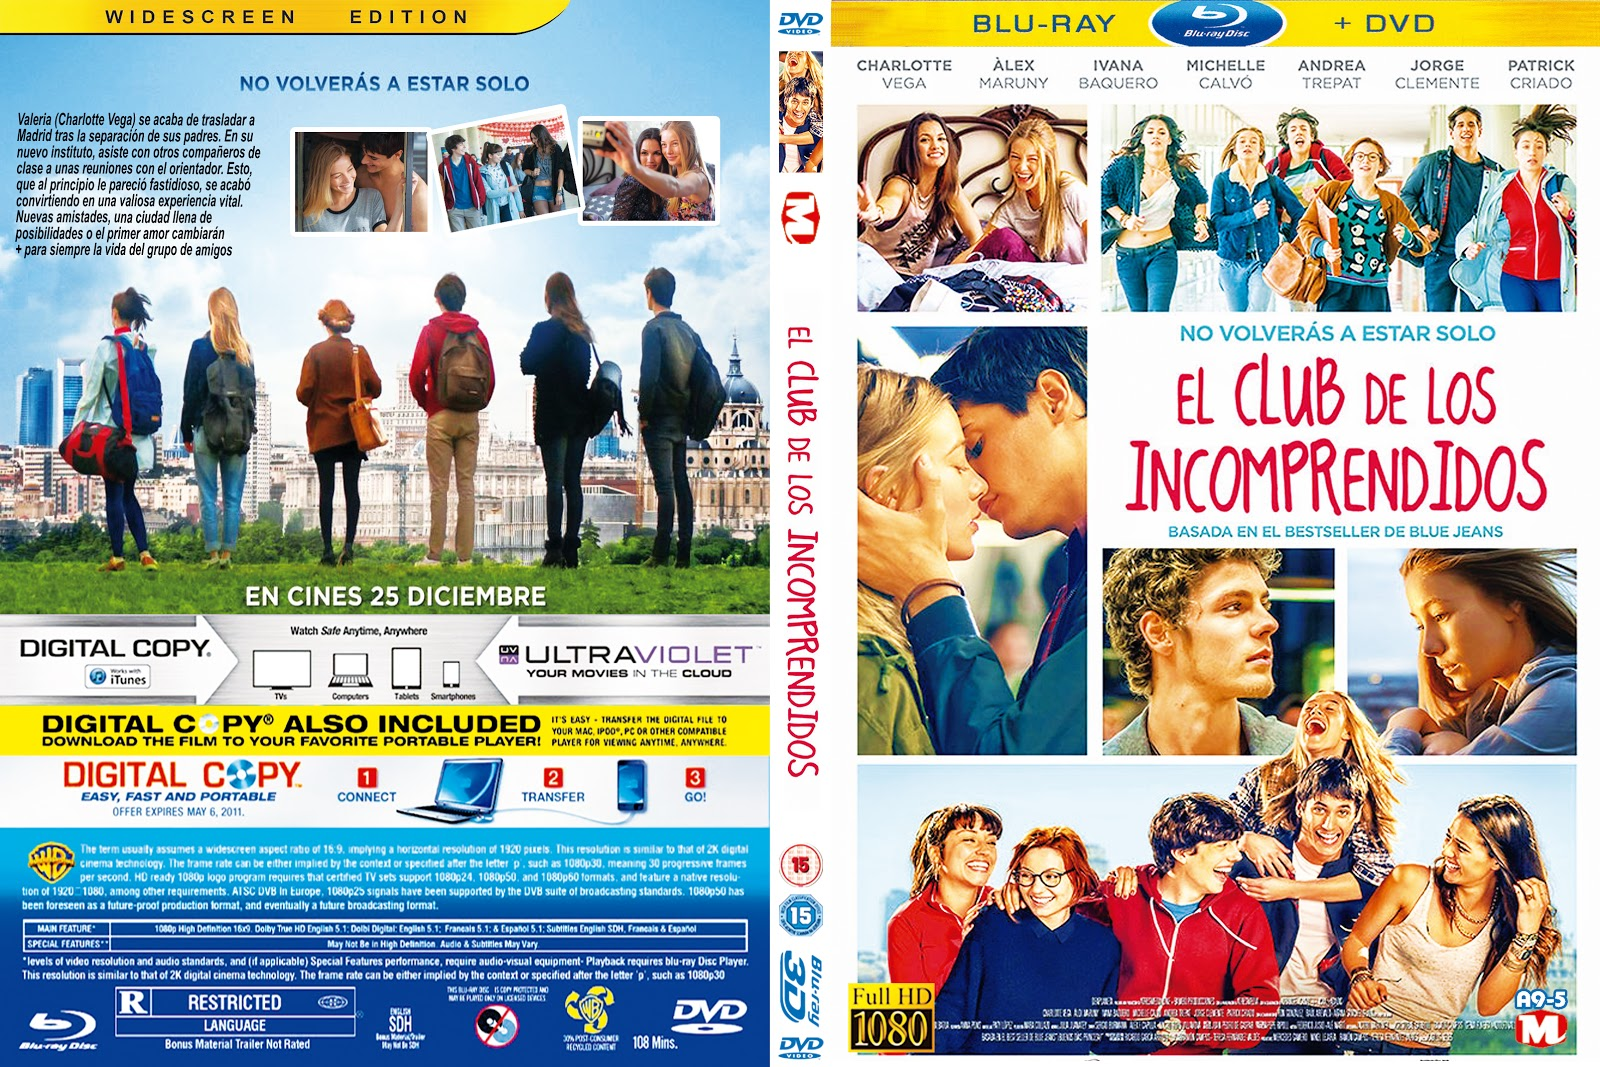 El Club Delos Incomprendidos Libro Cover El Club De Los Incomprendidos Dvd